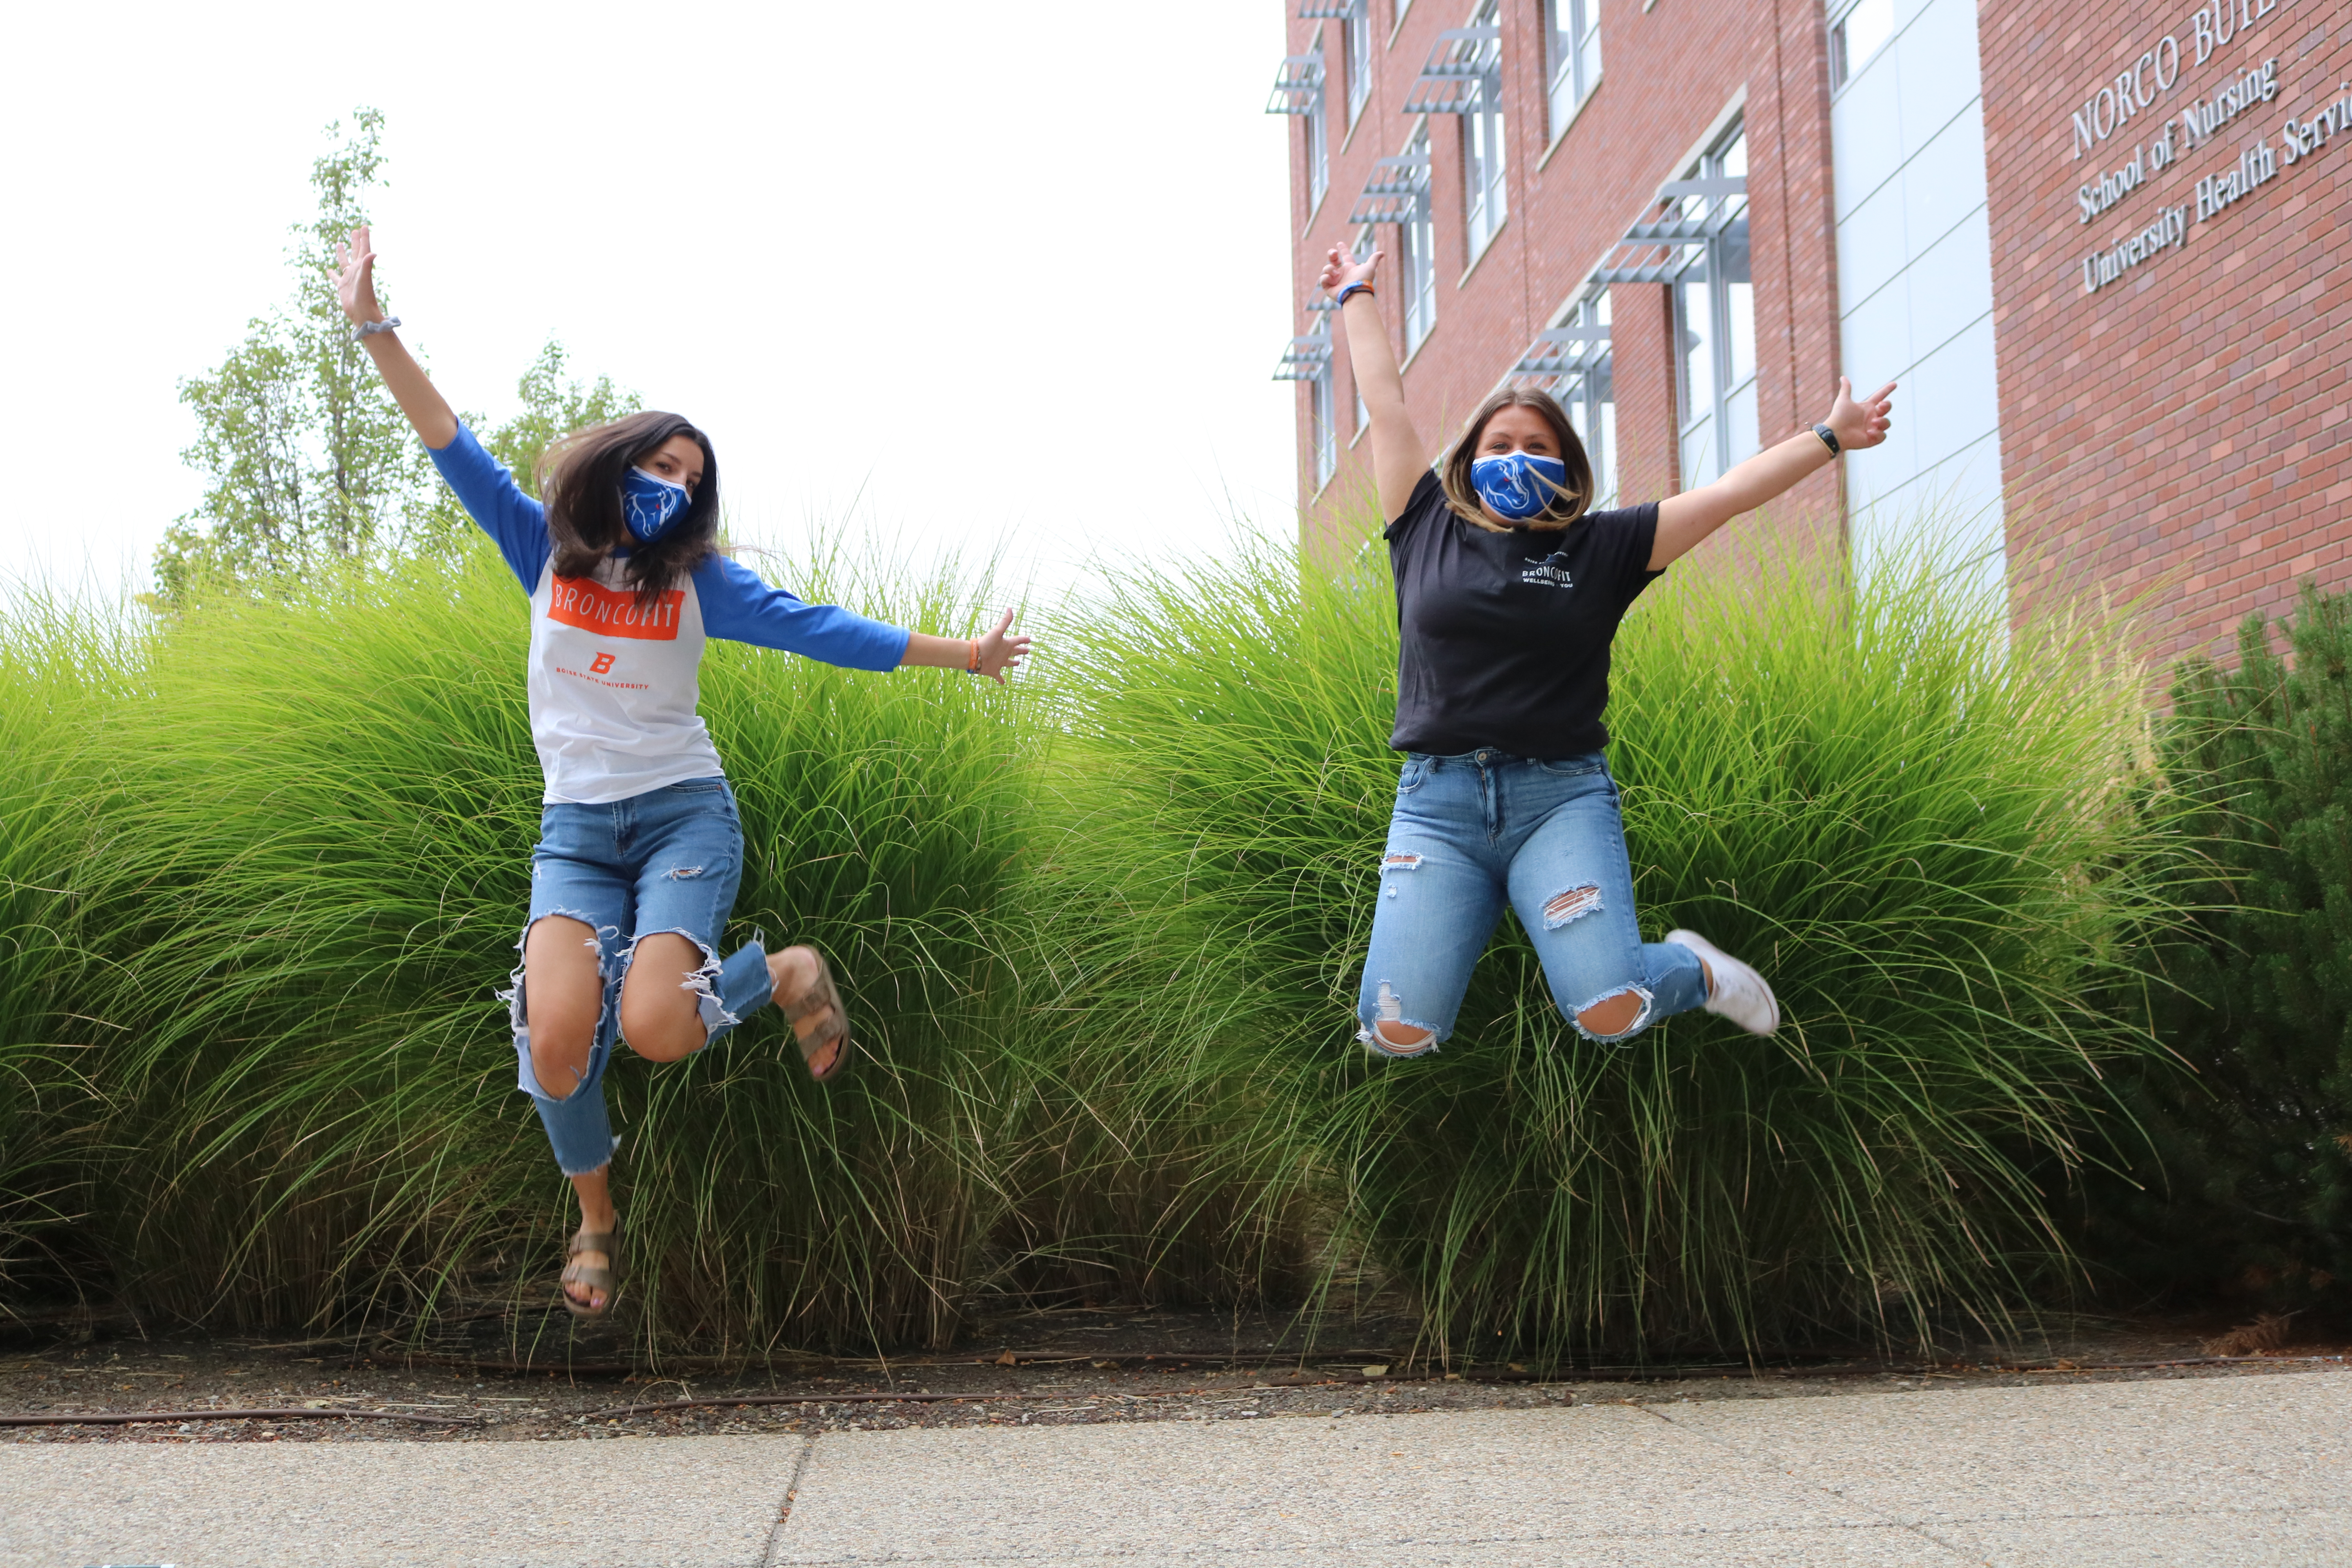 Two Boise State students jumping in masks